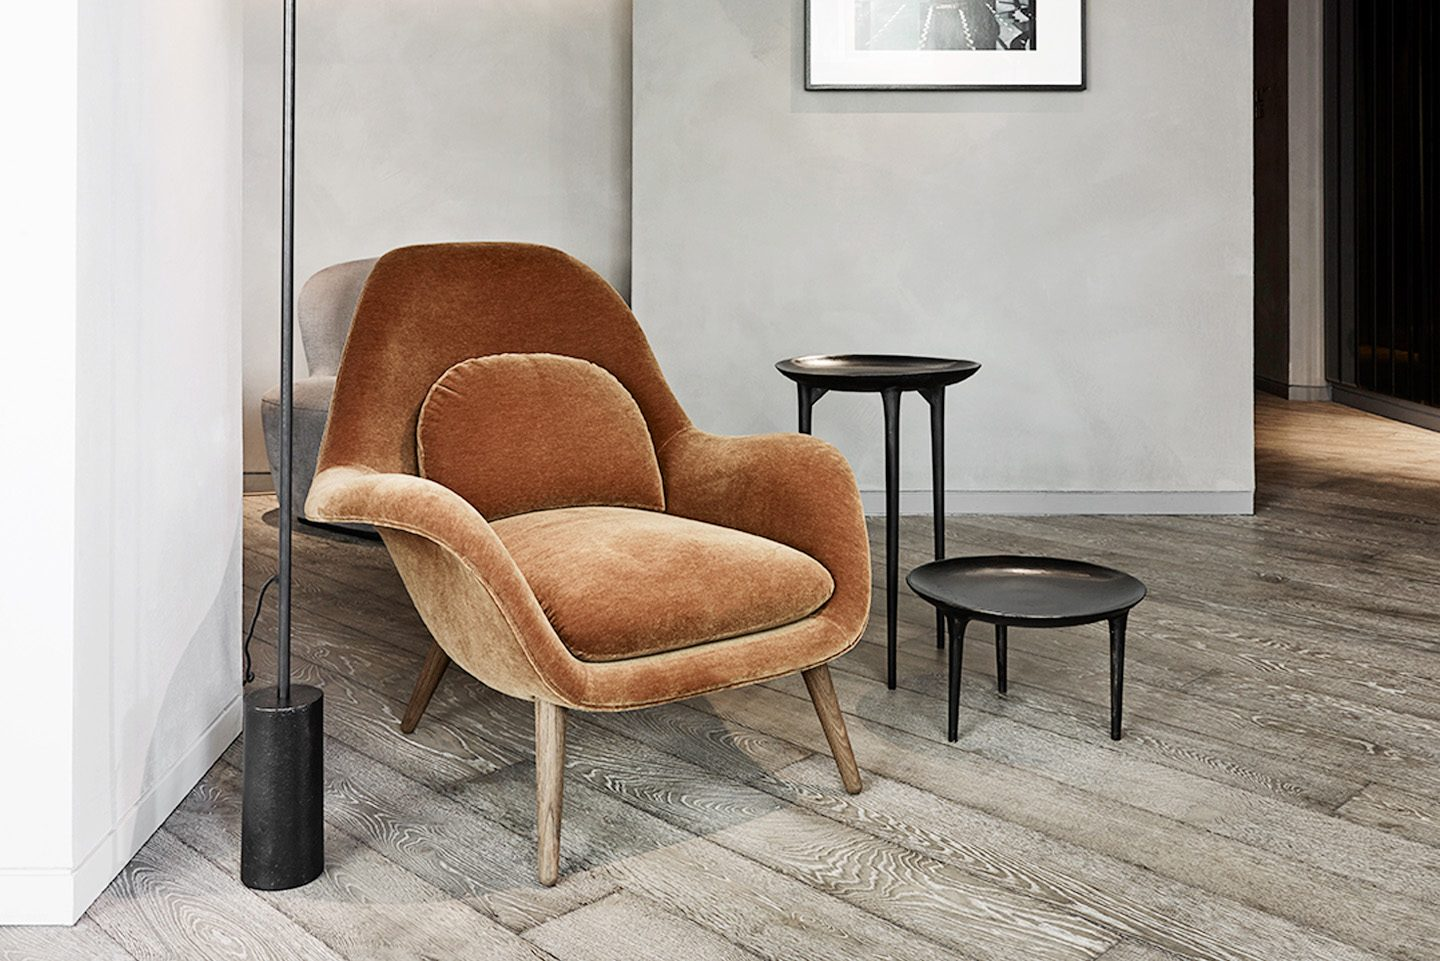 FREDERICIA SWOON LOUNGE CHAIR IN CARAMEL UPHOLSTERY